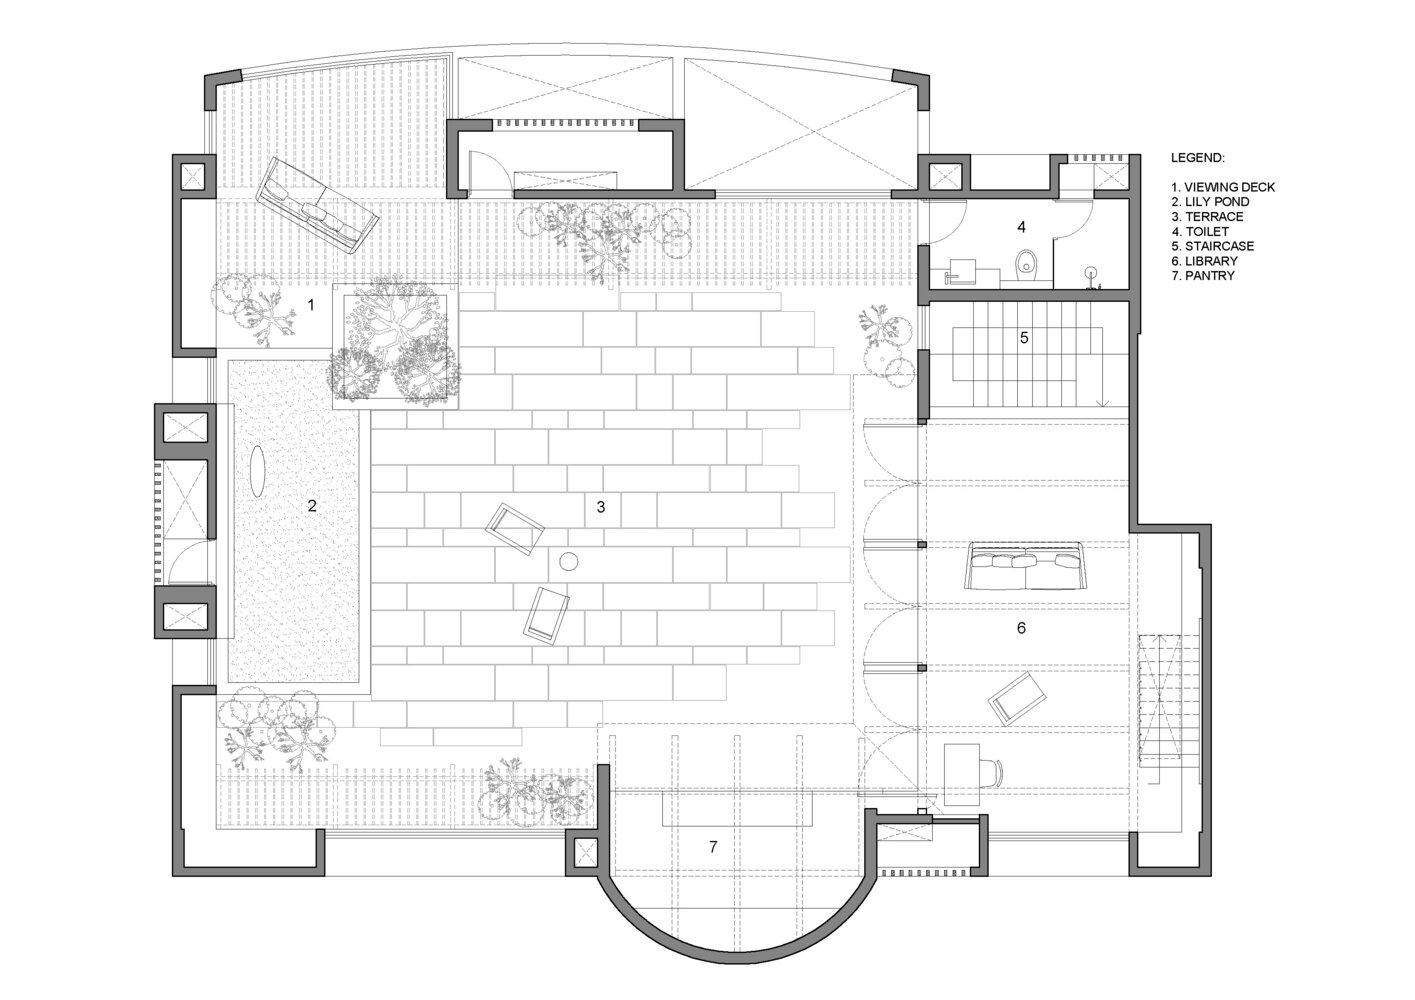 Veranda-on-a-Roof-Studio-Course-India-Floor-Plan-Humble-Homes